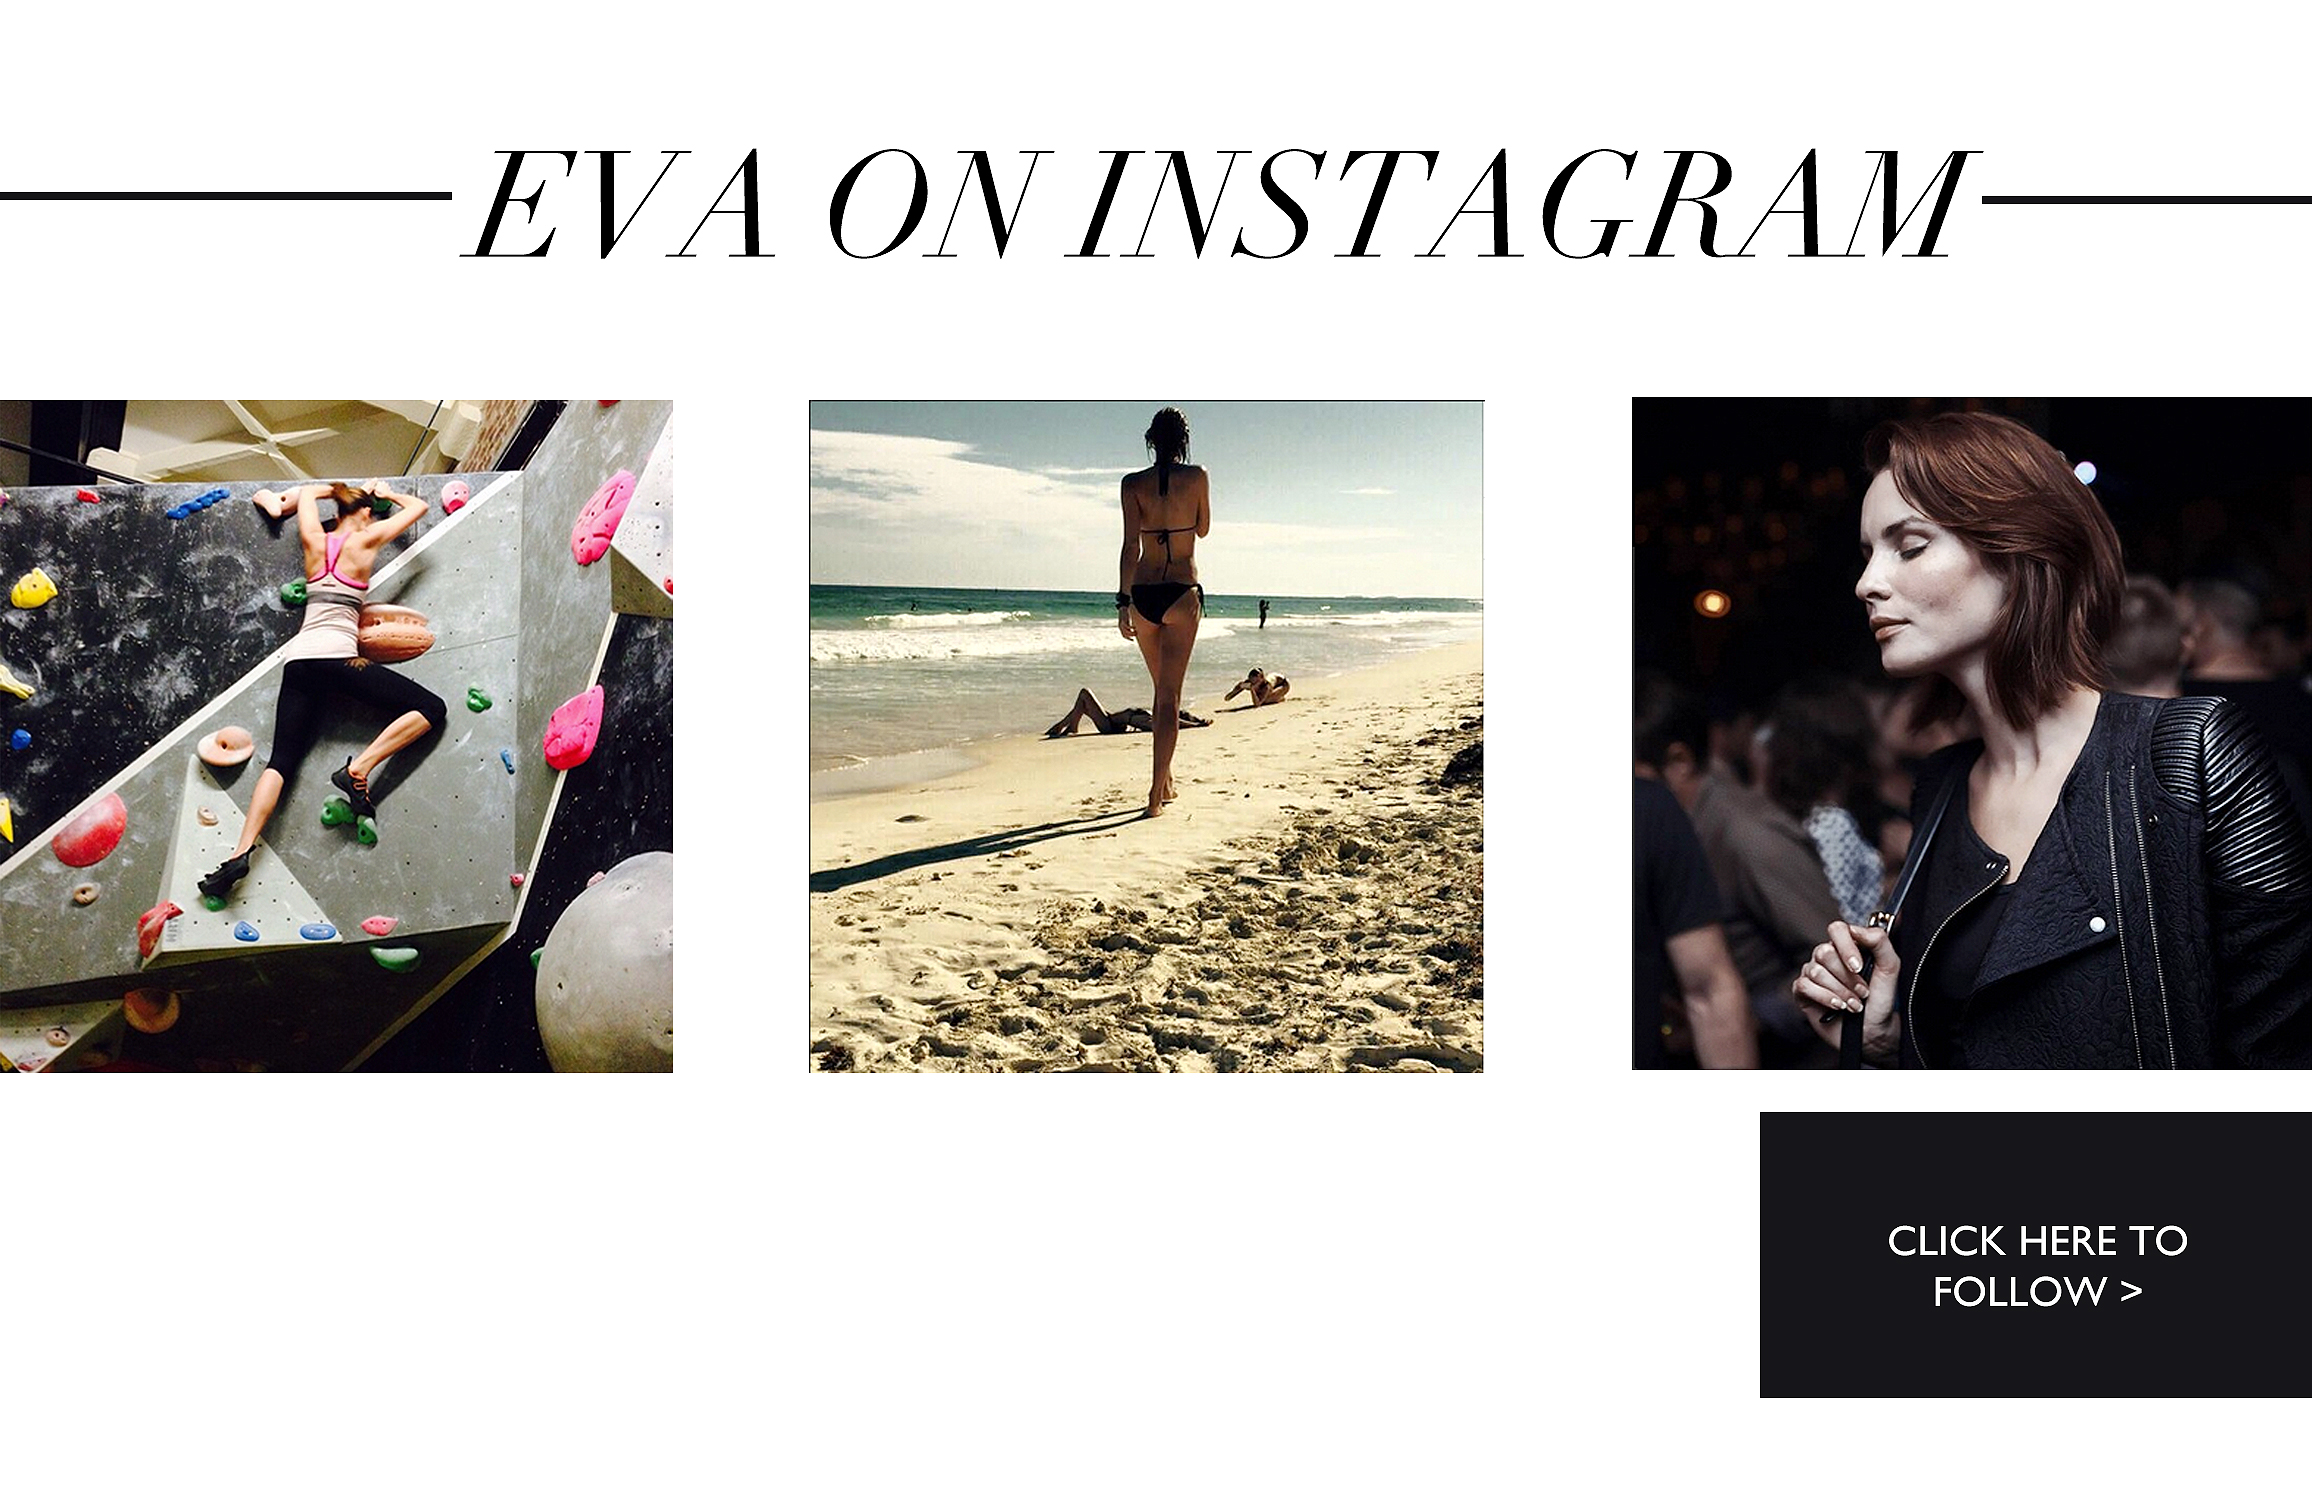 EVA-P-on-instagram-web2